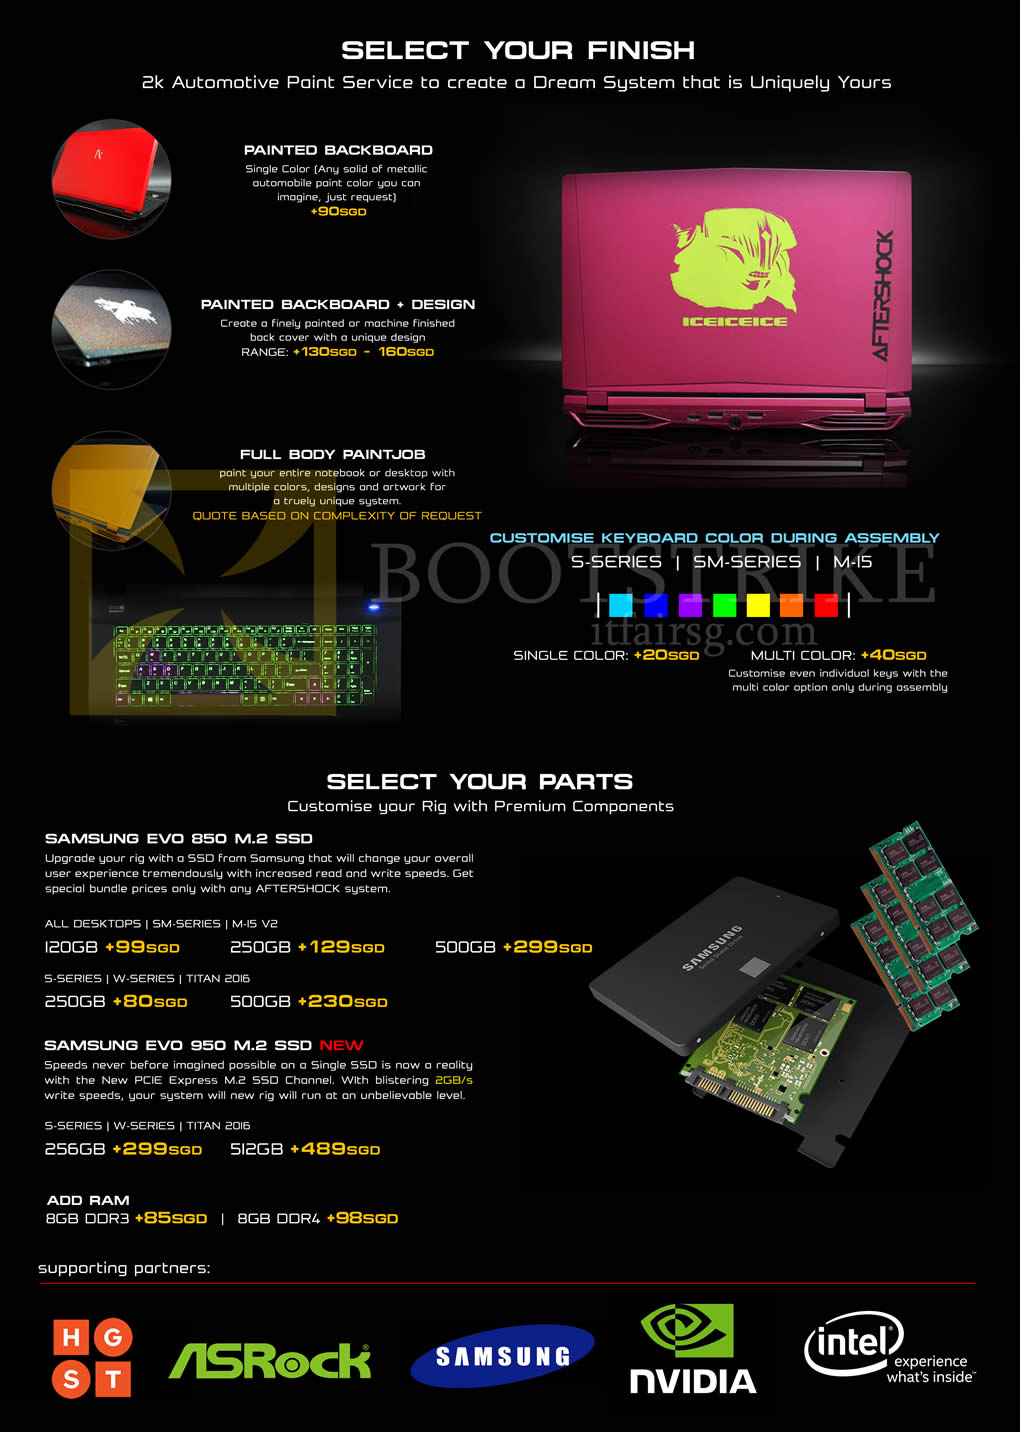 SITEX 2015 price list image brochure of Aftershock Personalising Notebooks Finish, Parts